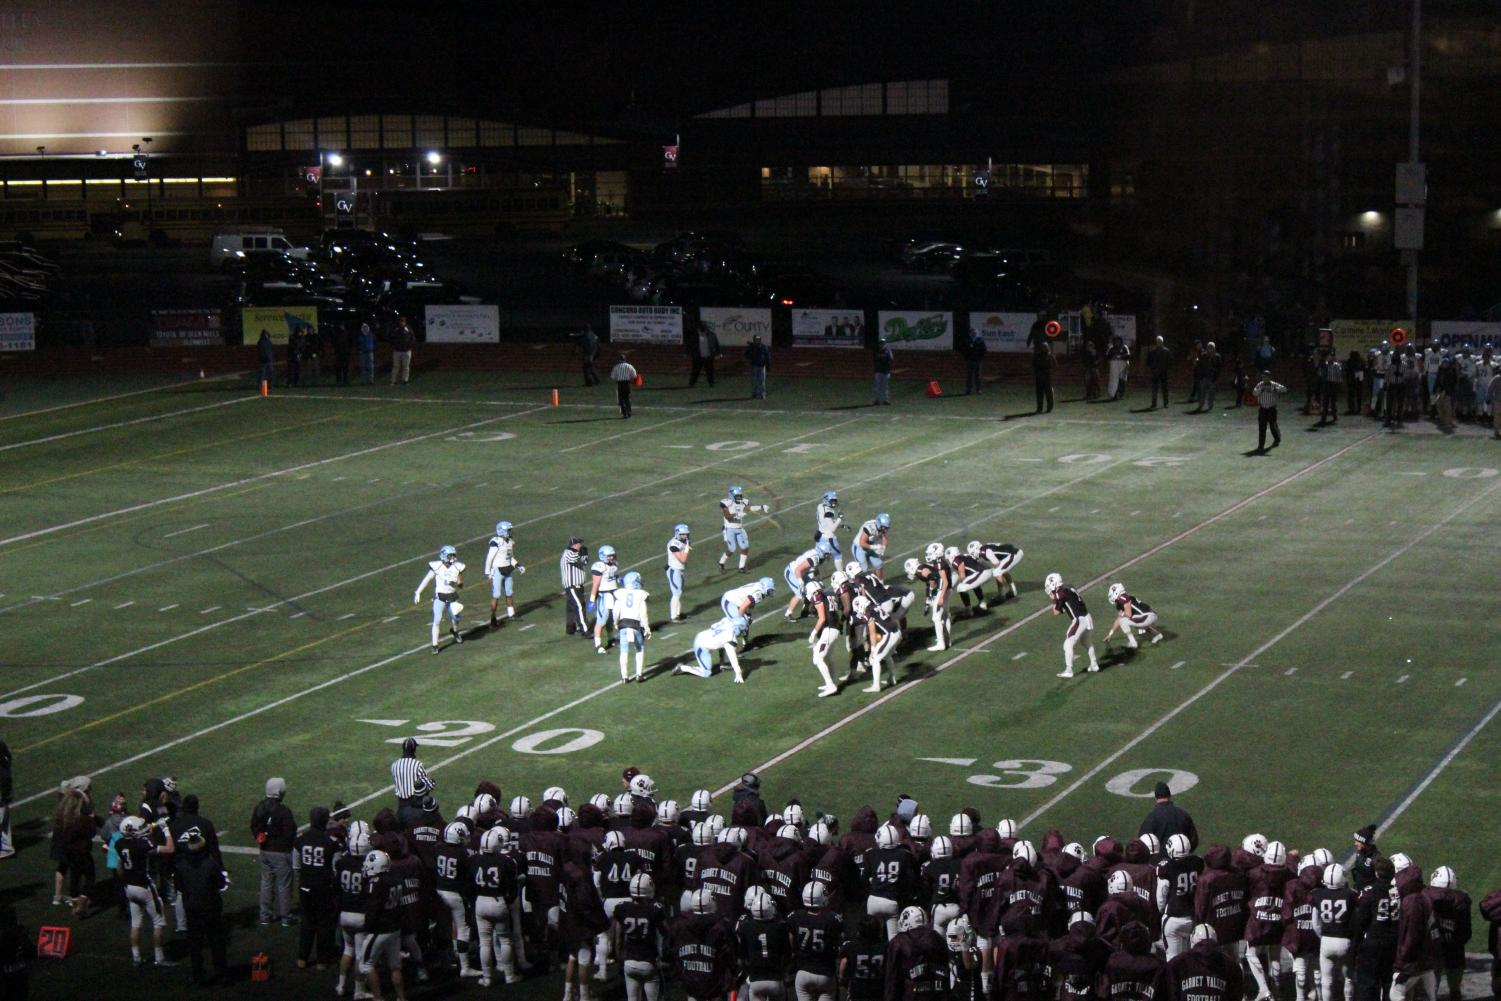 The Garnet Valley Jaguars edge the North Penn Knights in the fourth quarter